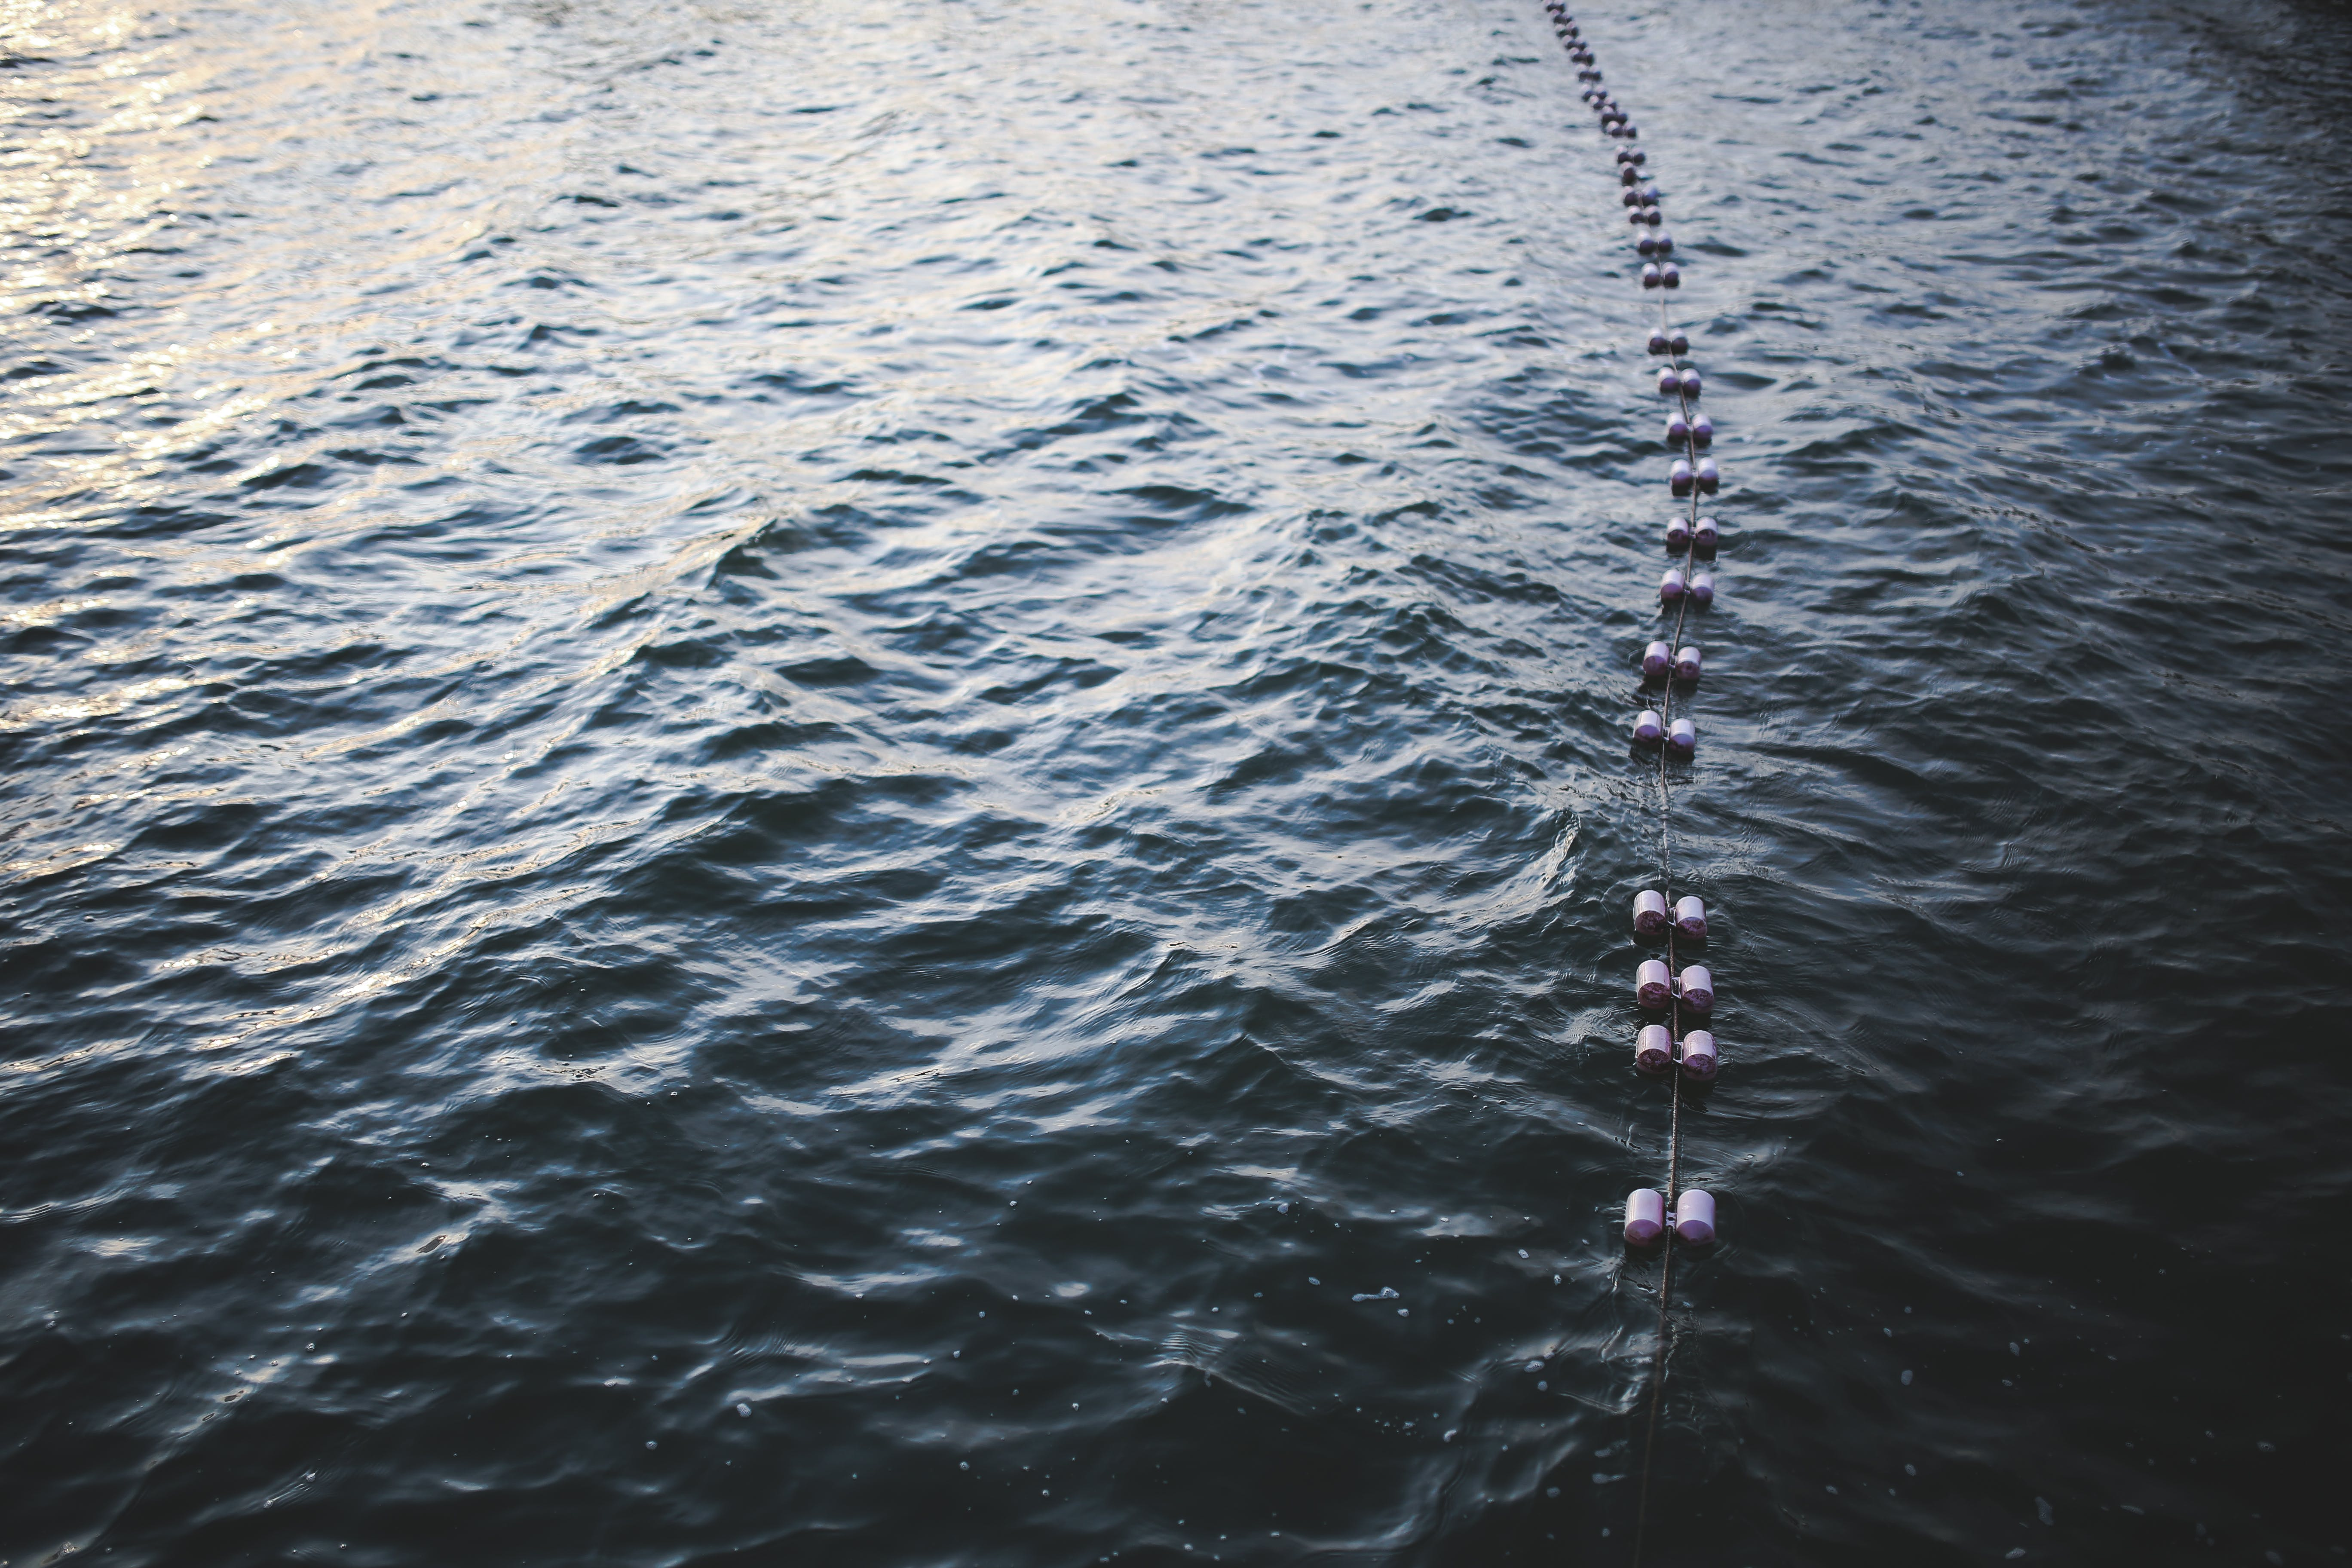 Buoys floating on top of the water